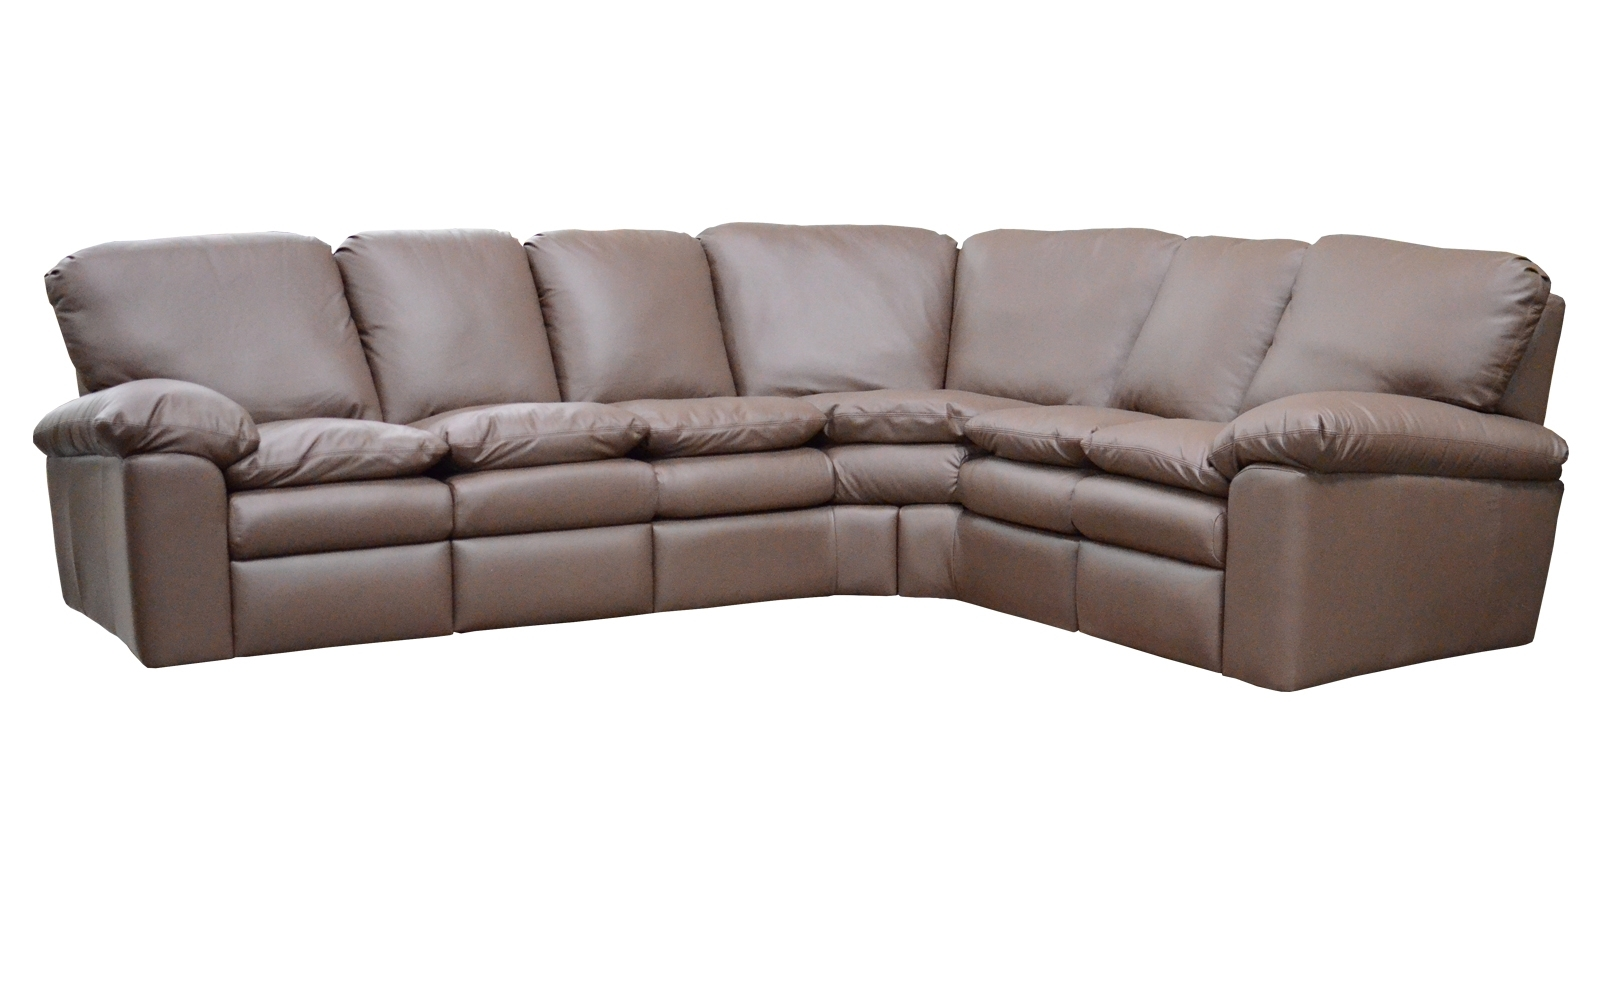 El Dorado Sectional – Omnia Leather Within El Dorado Sectional Sofas (View 10 of 10)